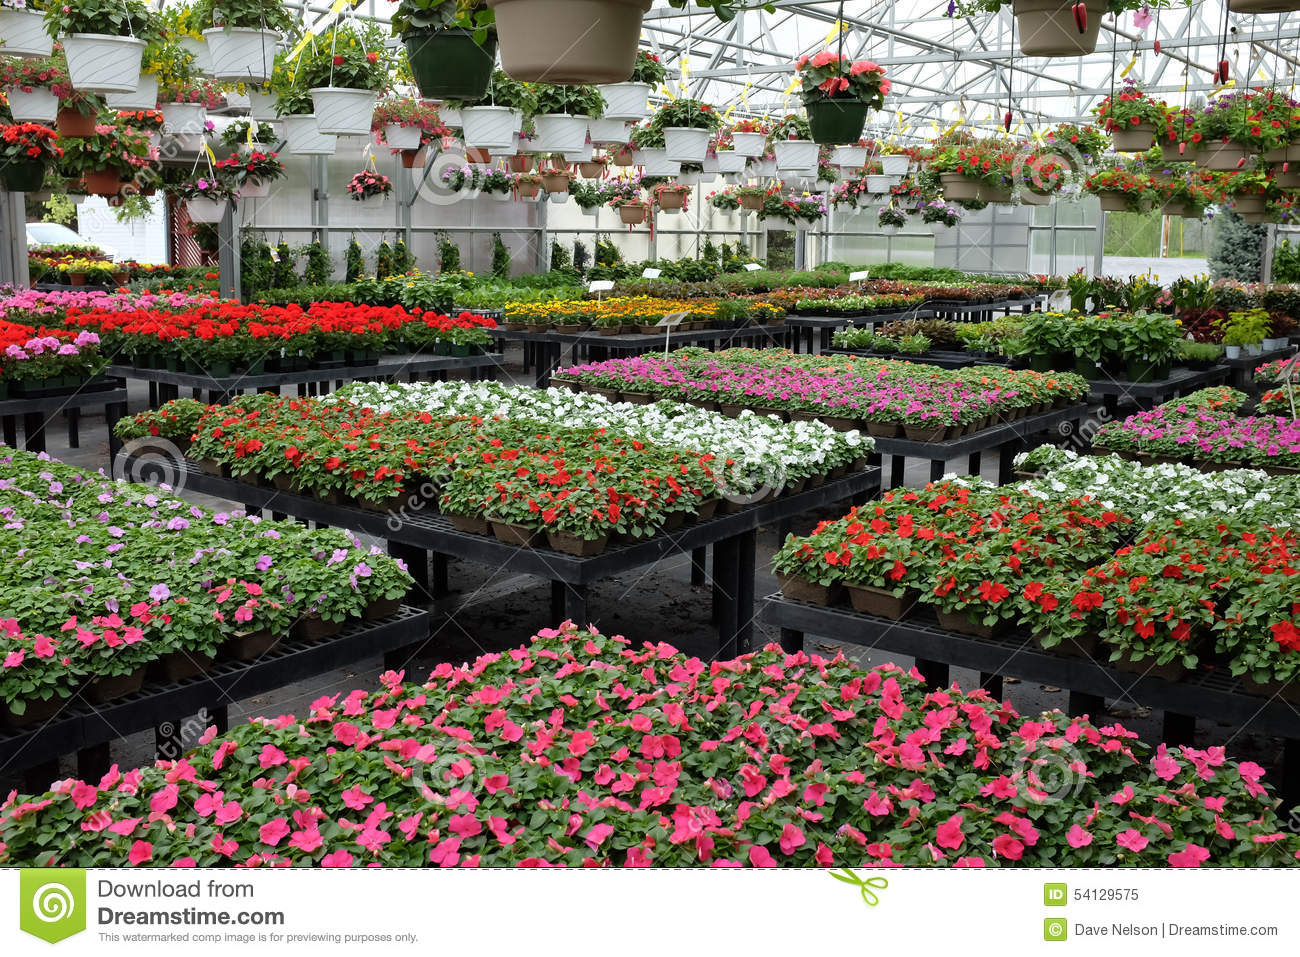 Annual Flowers For Sale In Greenhouse Stock Photo.